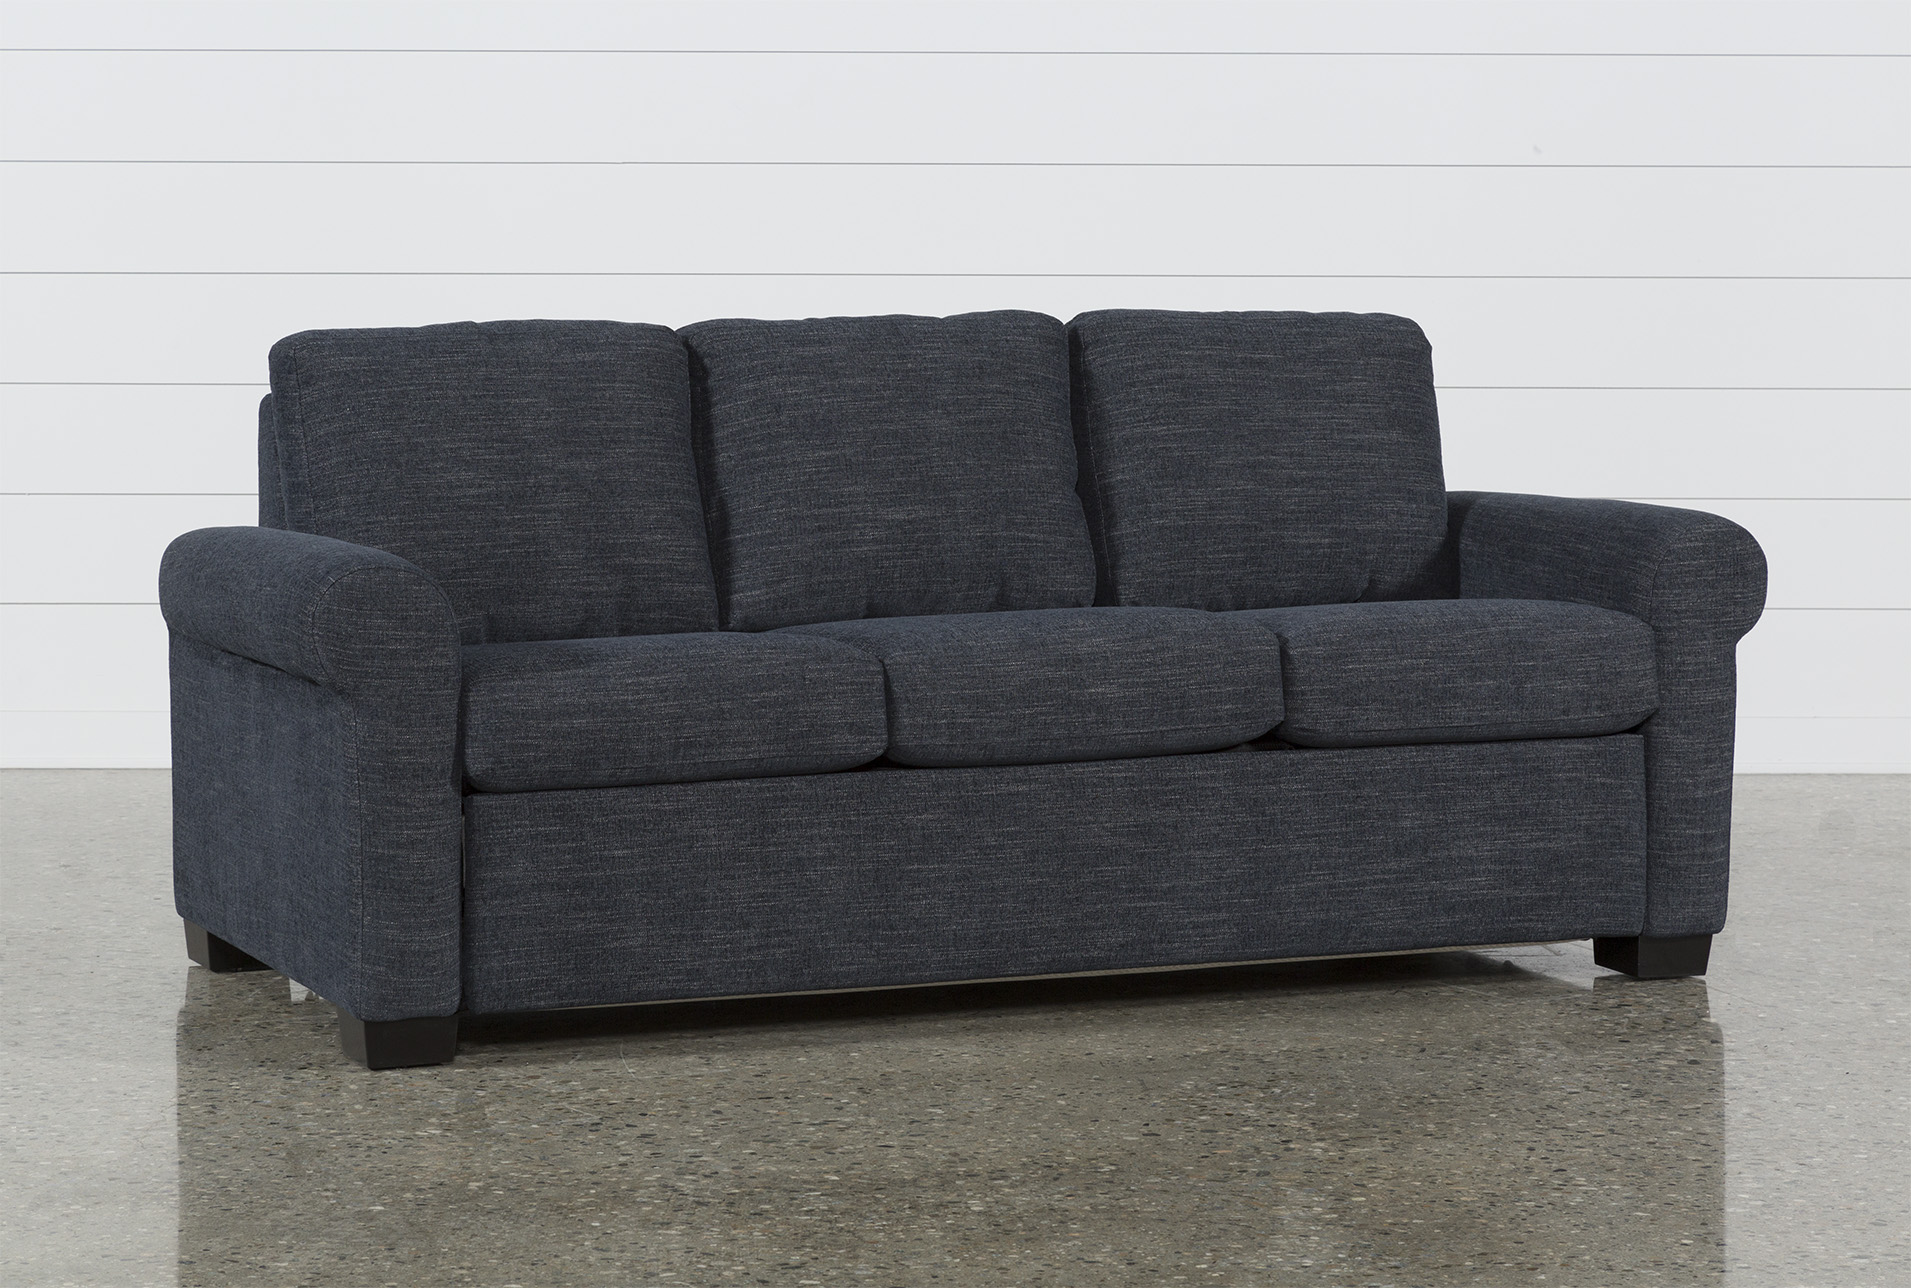 Sofa Dreams Outlet Alexis Denim Queen Plus Sofa Sleeper